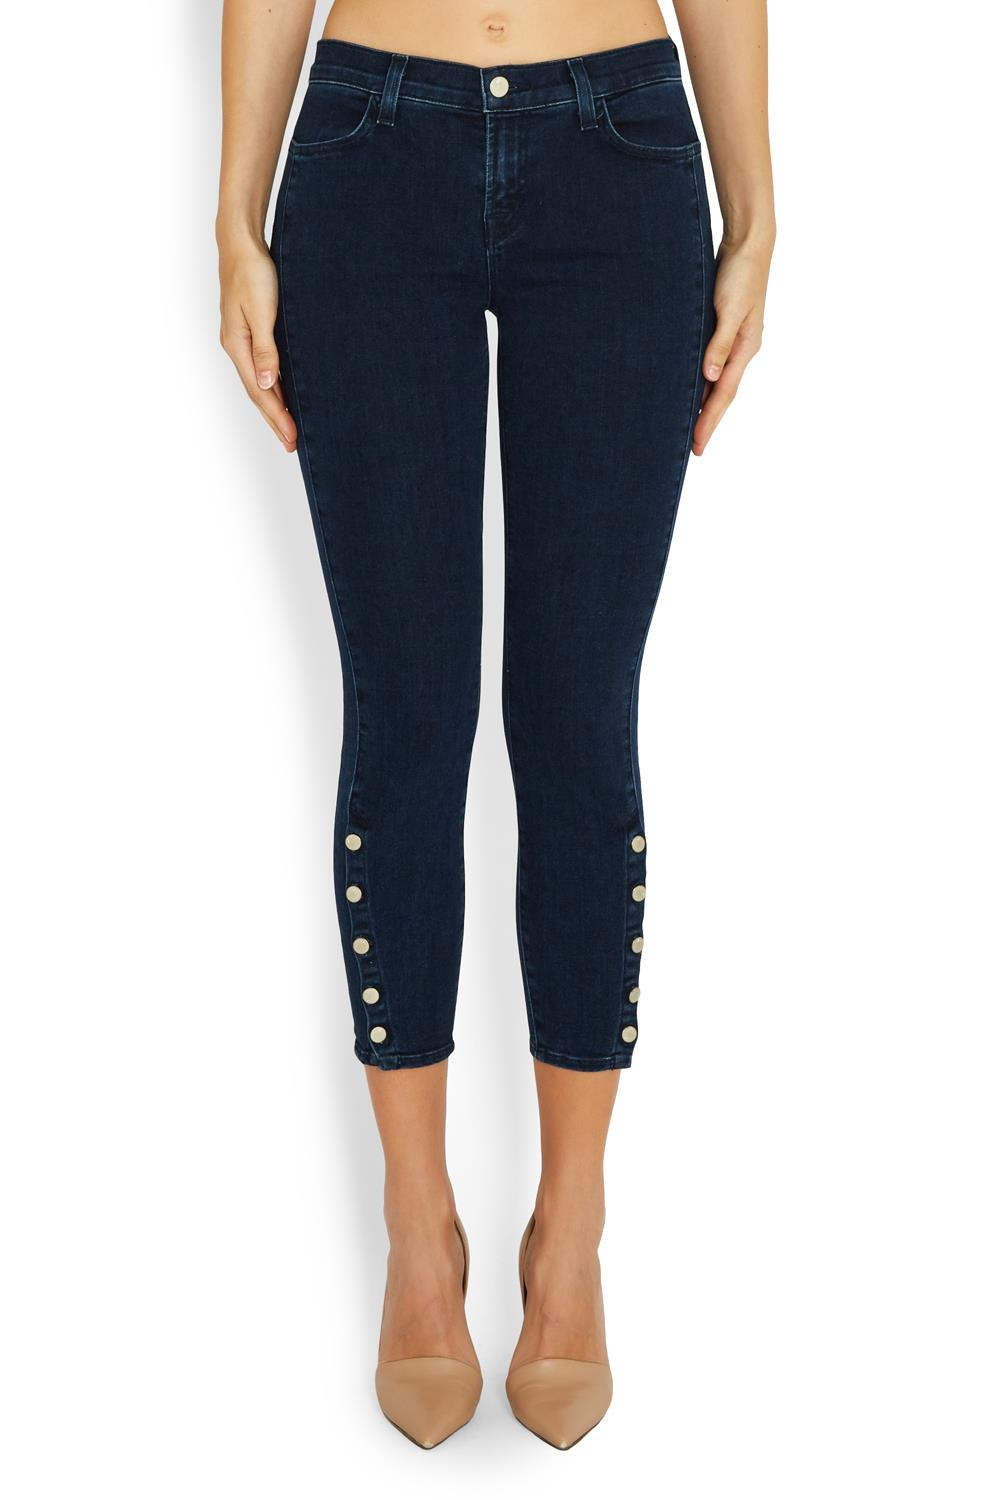 J Brand   Suivi Crop in Allegiance , £95 (used to be £250) -  One of my favourite jeans brands. Yet, I have never bought anything from them at full price (£250 for a pair of jeans, really??).